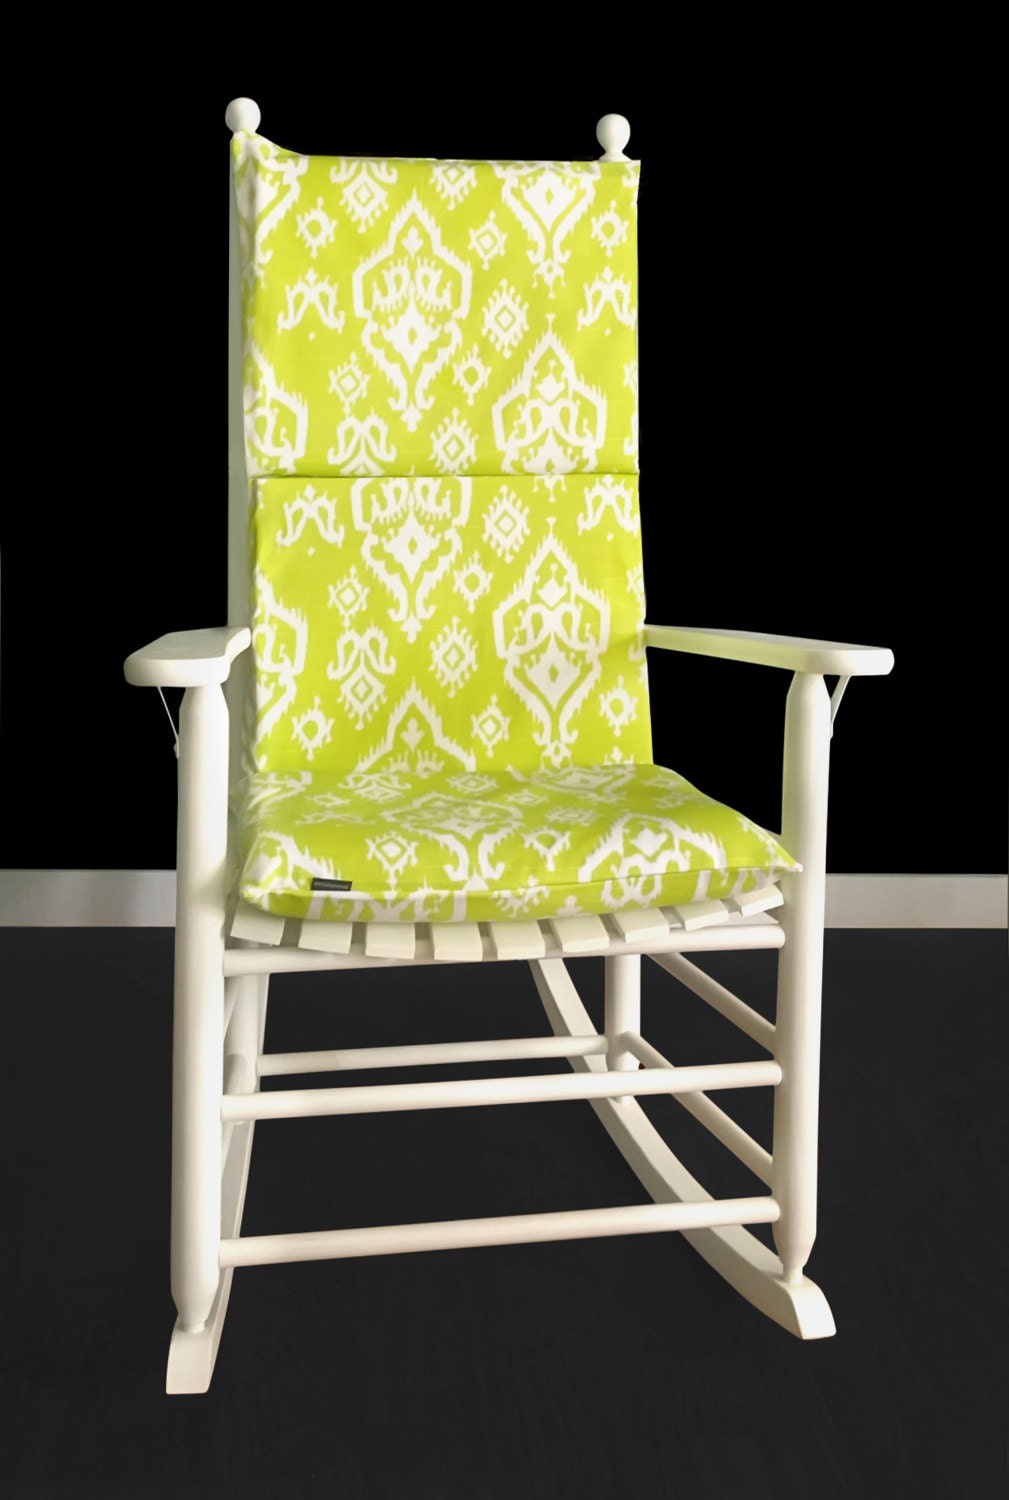 Superb Lime Green Indian Style Rocking Chair Cushion Cover Pdpeps Interior Chair Design Pdpepsorg